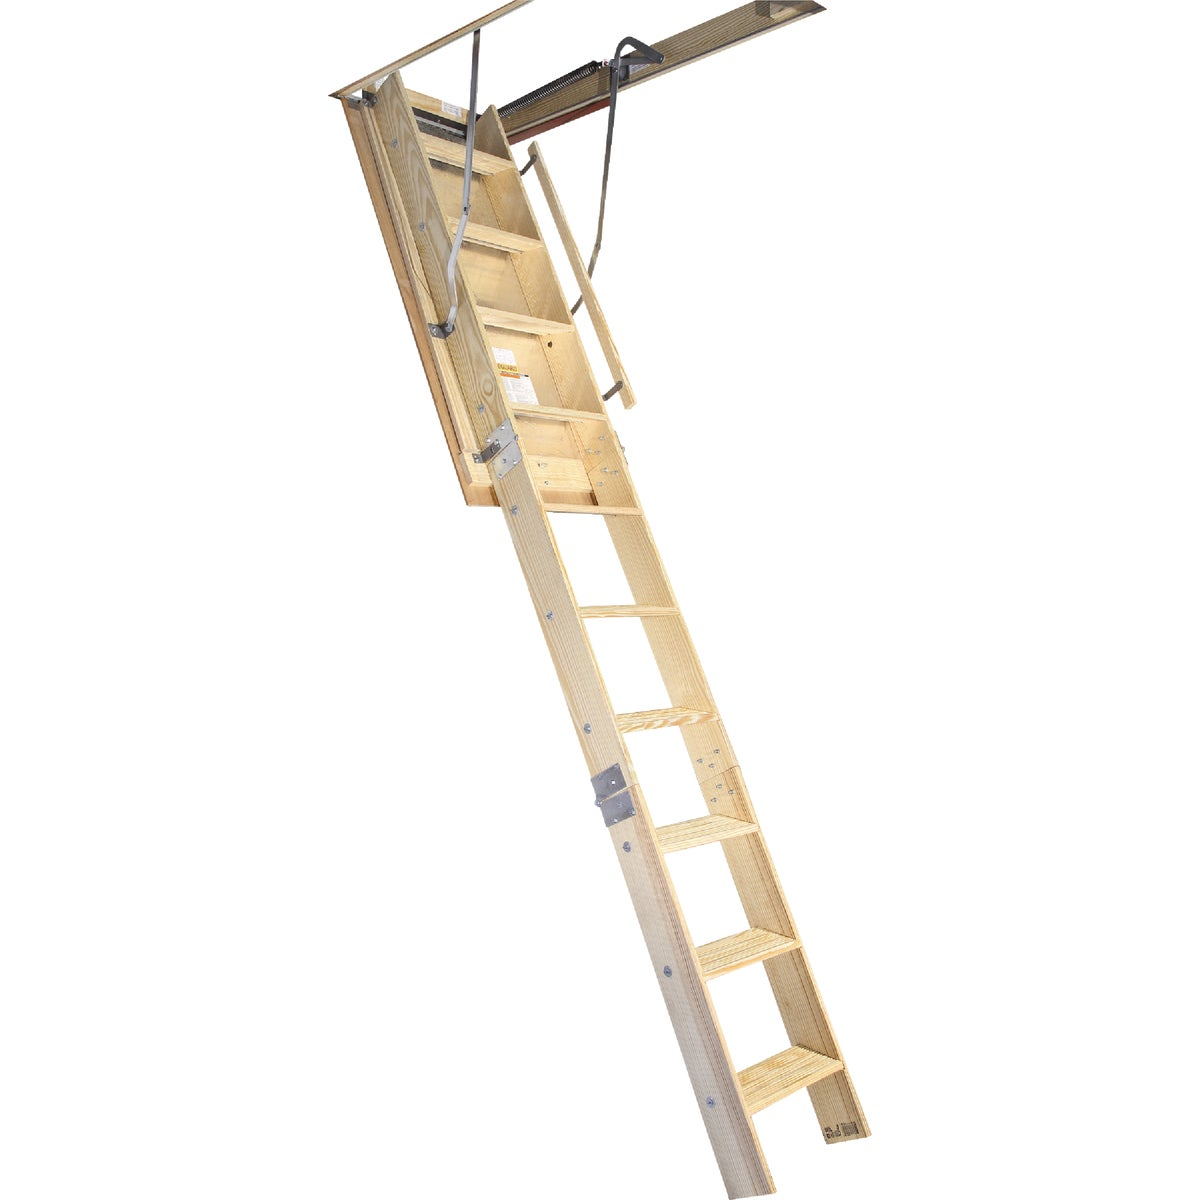 22X105 PREM ATTIC STAIR - AET89 by Louisville Ladder